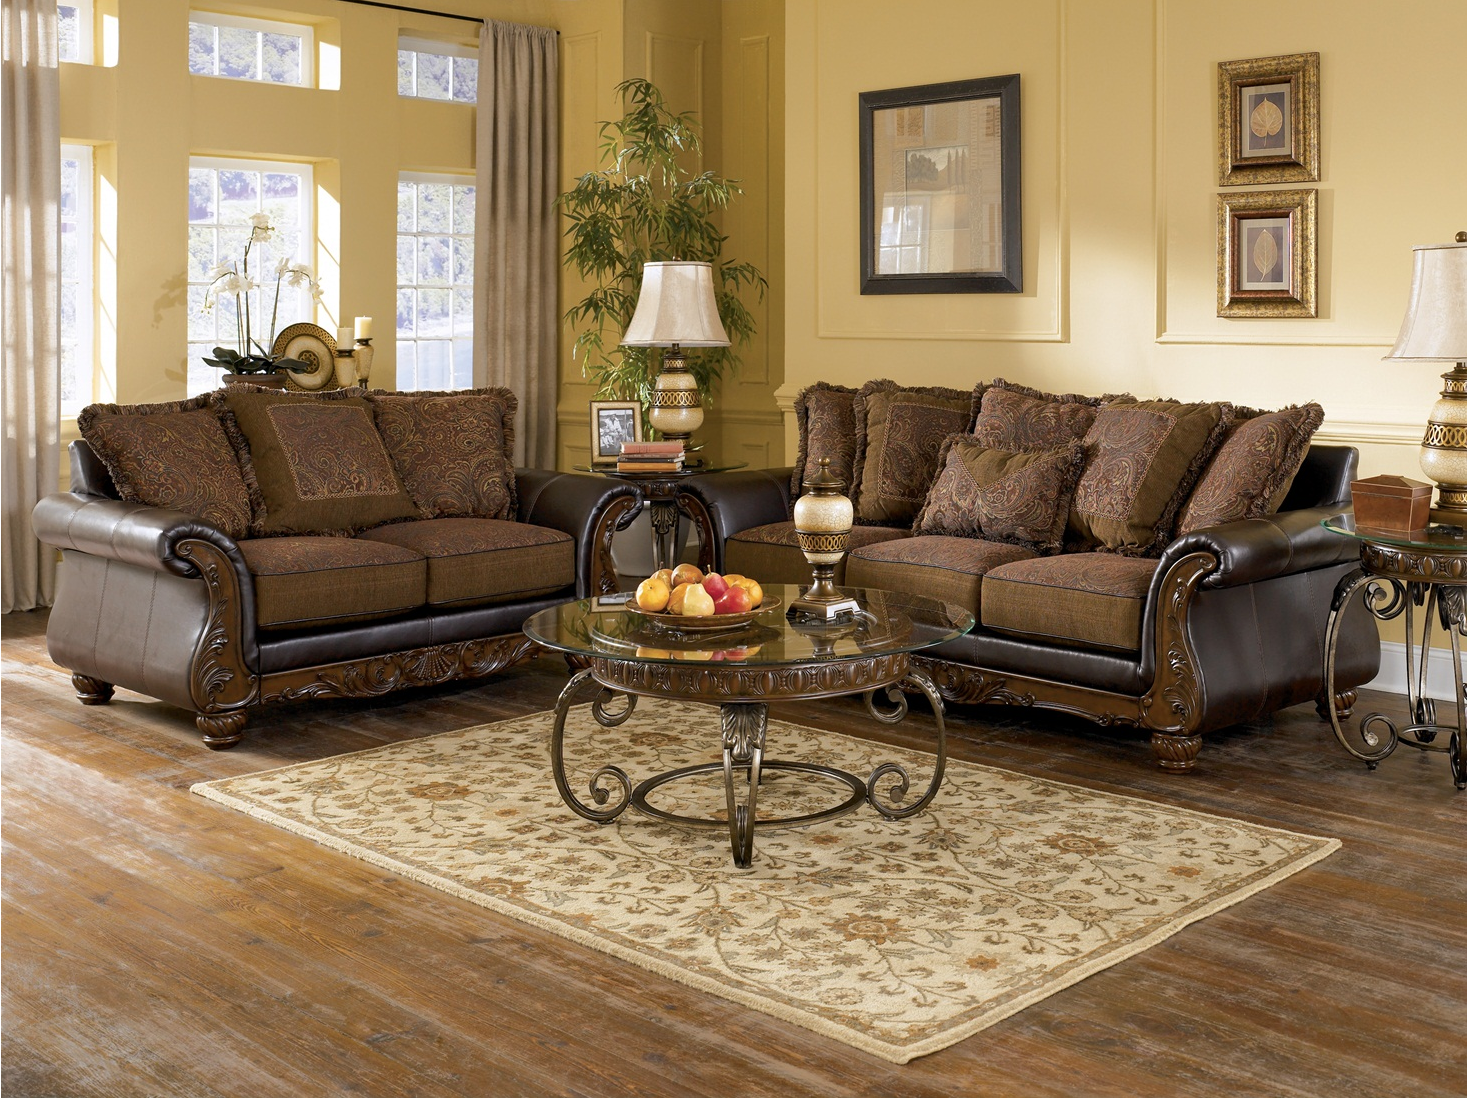 Wilmington traditional living room furniture set by ashley - Living room furniture traditional ...